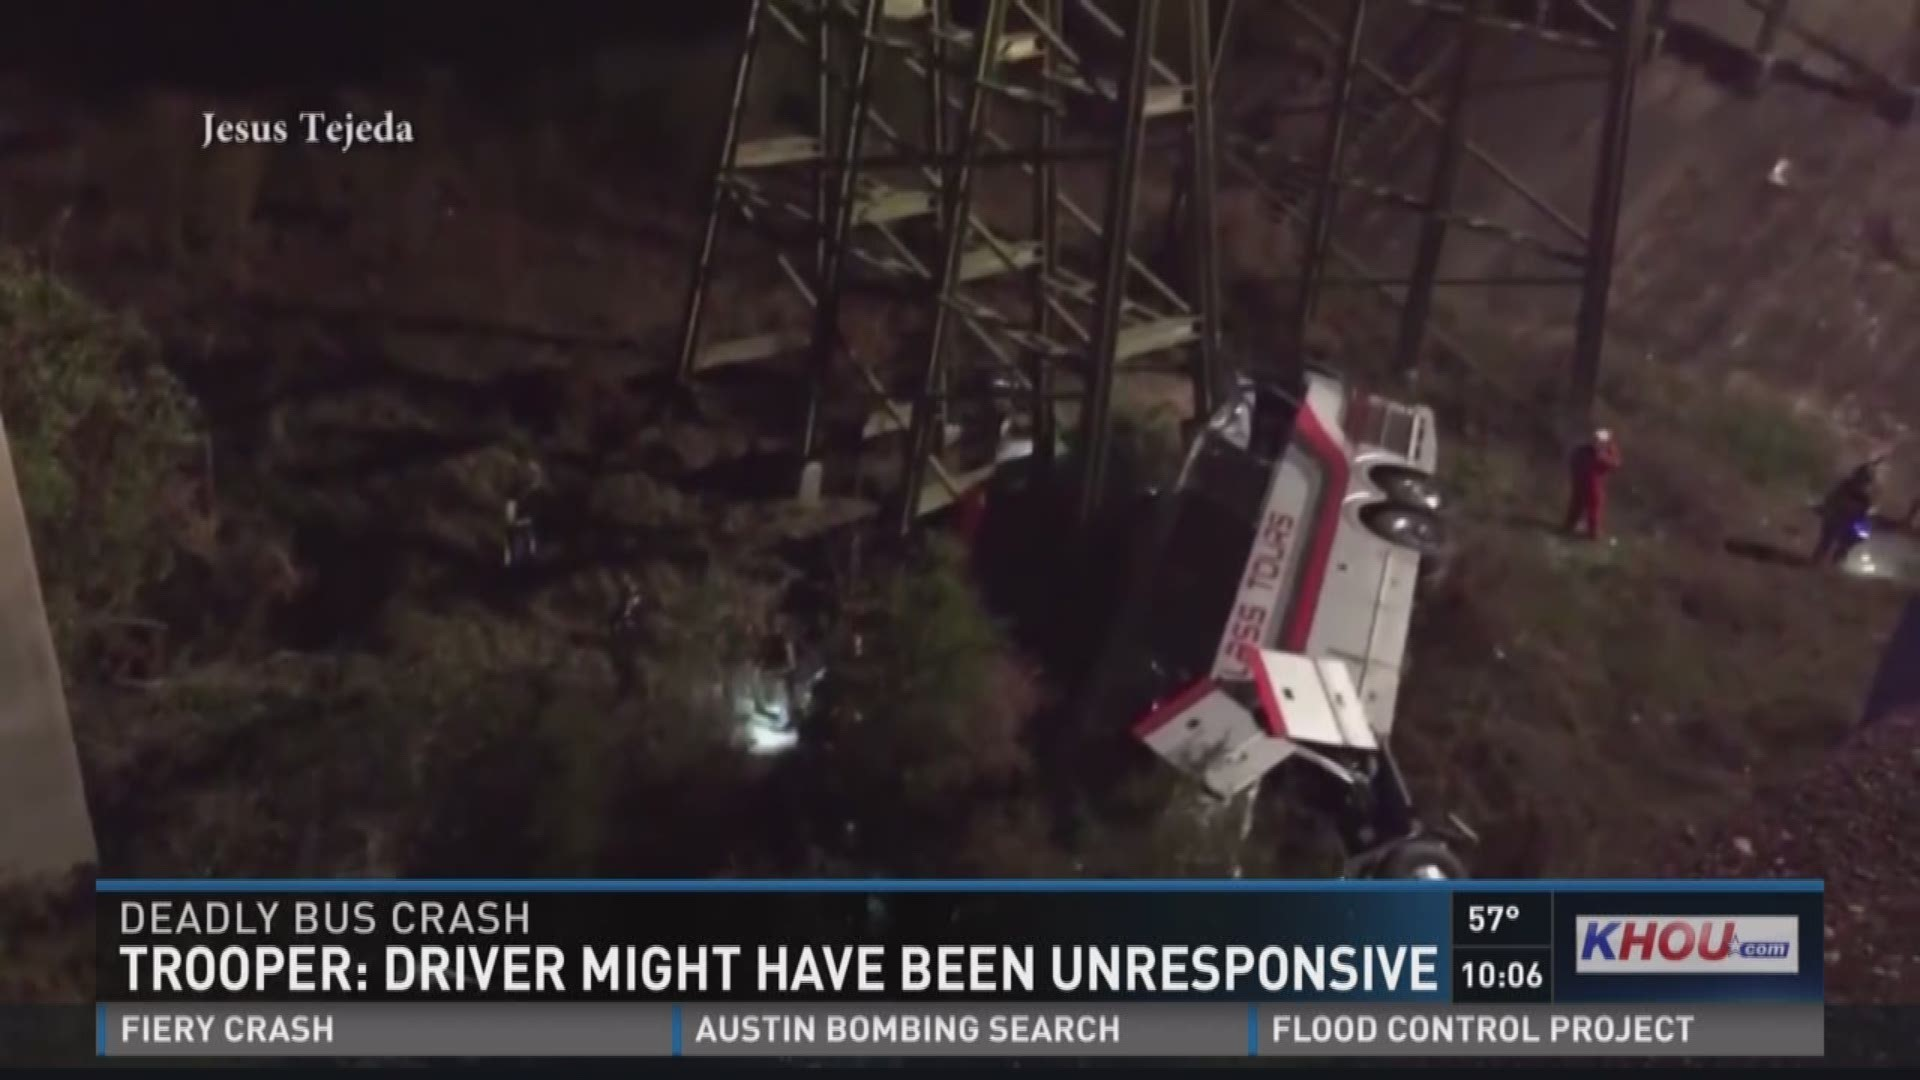 Driver Killed After Channelview Hs Bus Crashes In Alabama Ravine Khou Com